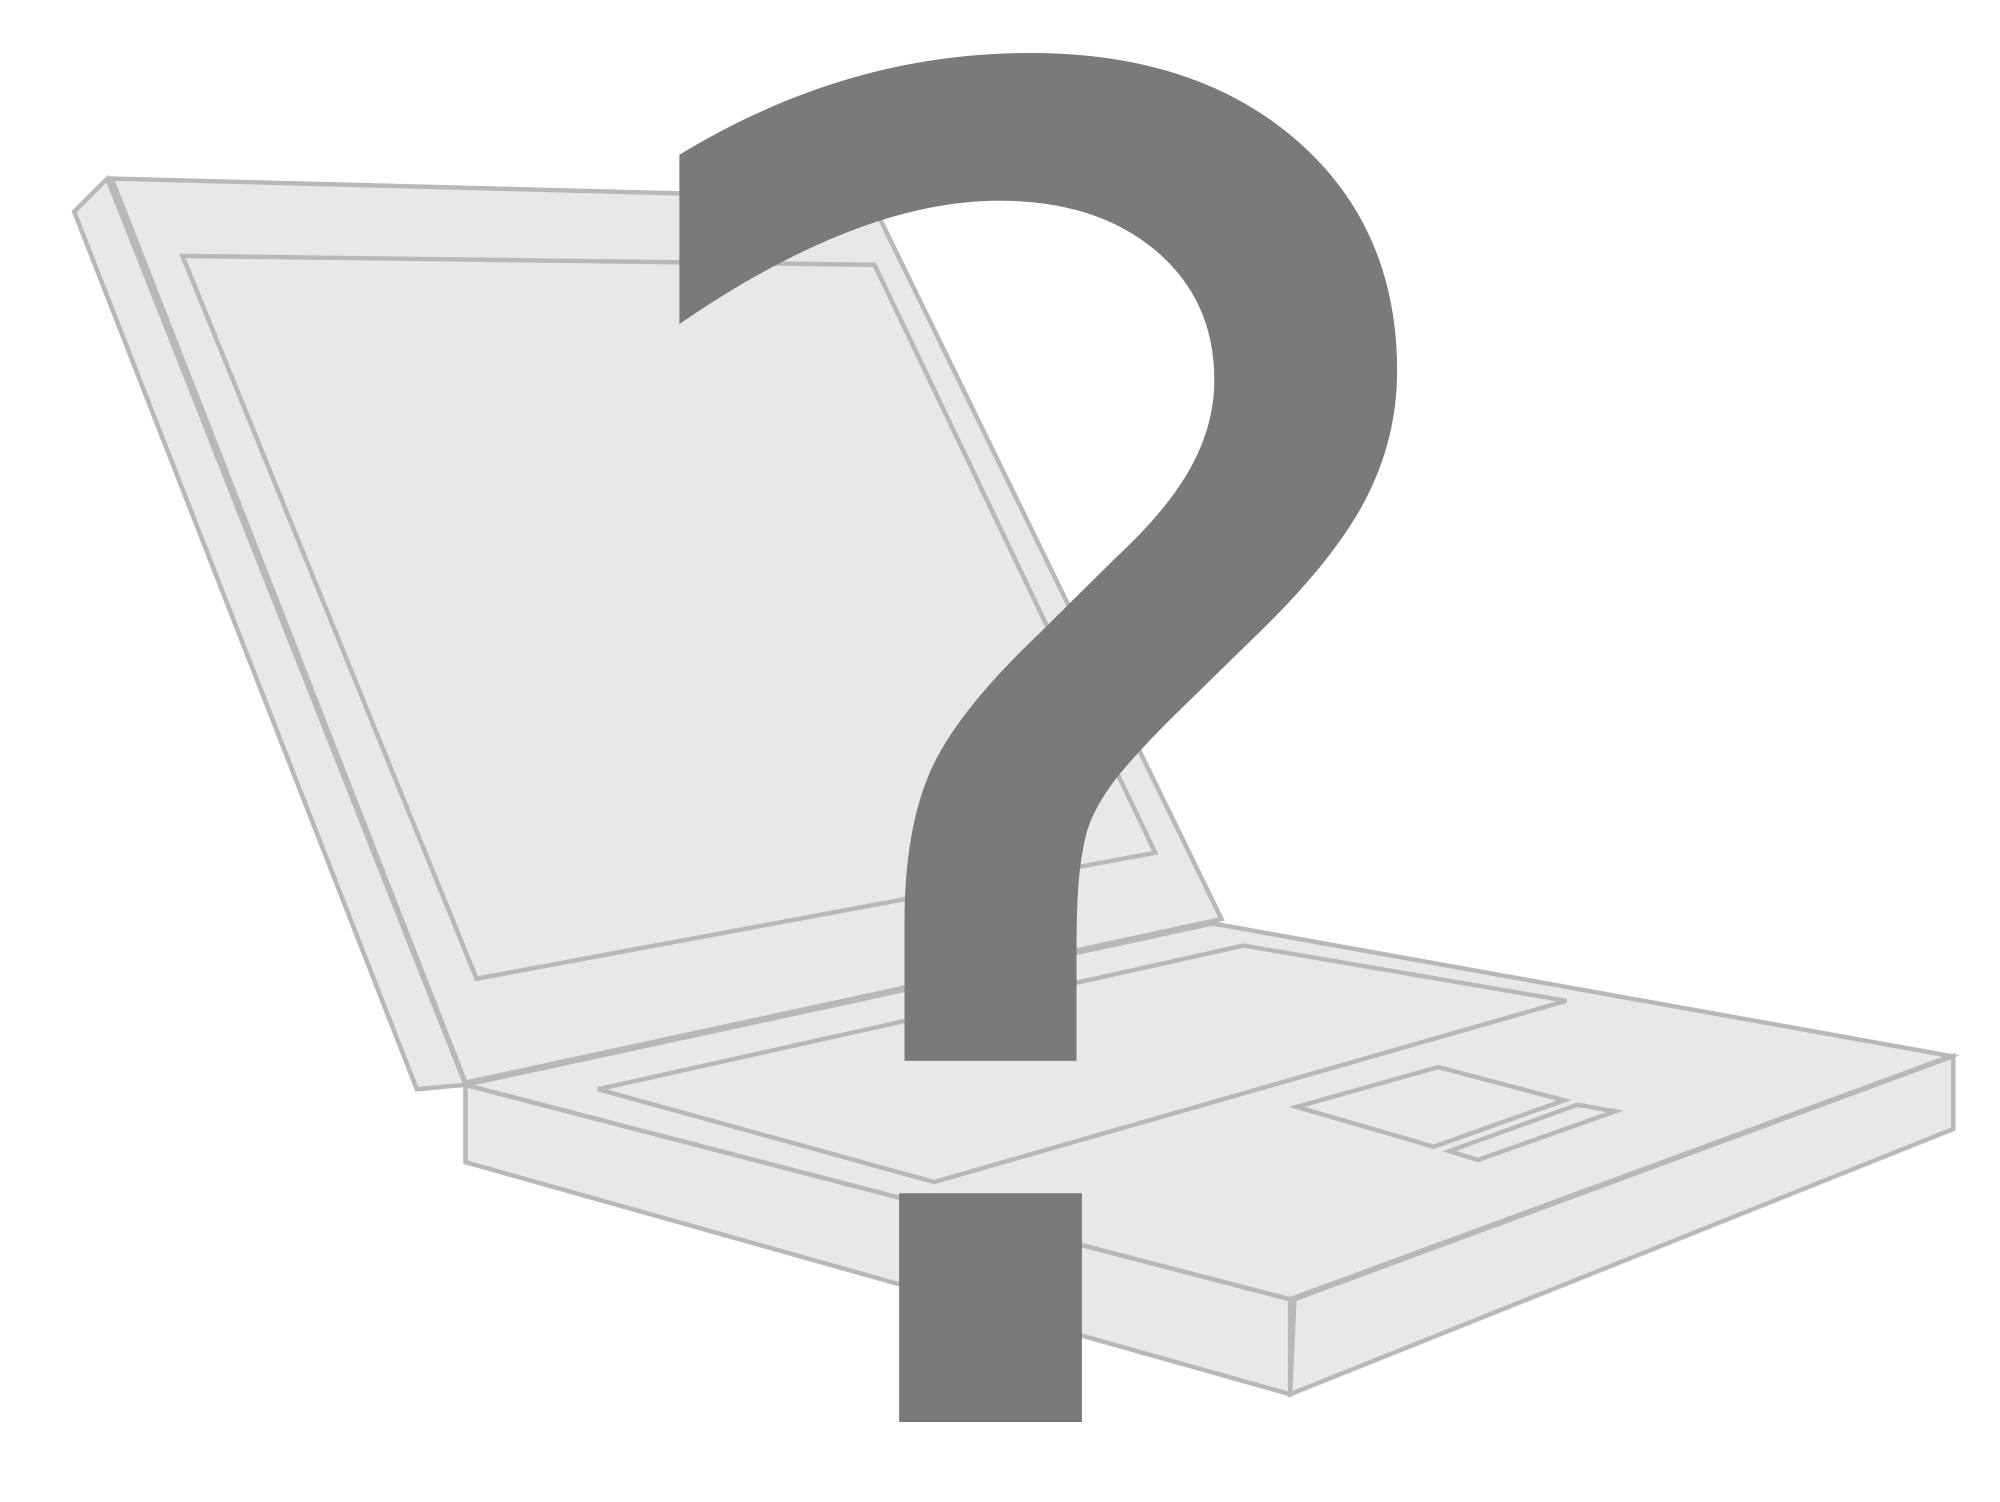 Mystery svg #12, Download drawings